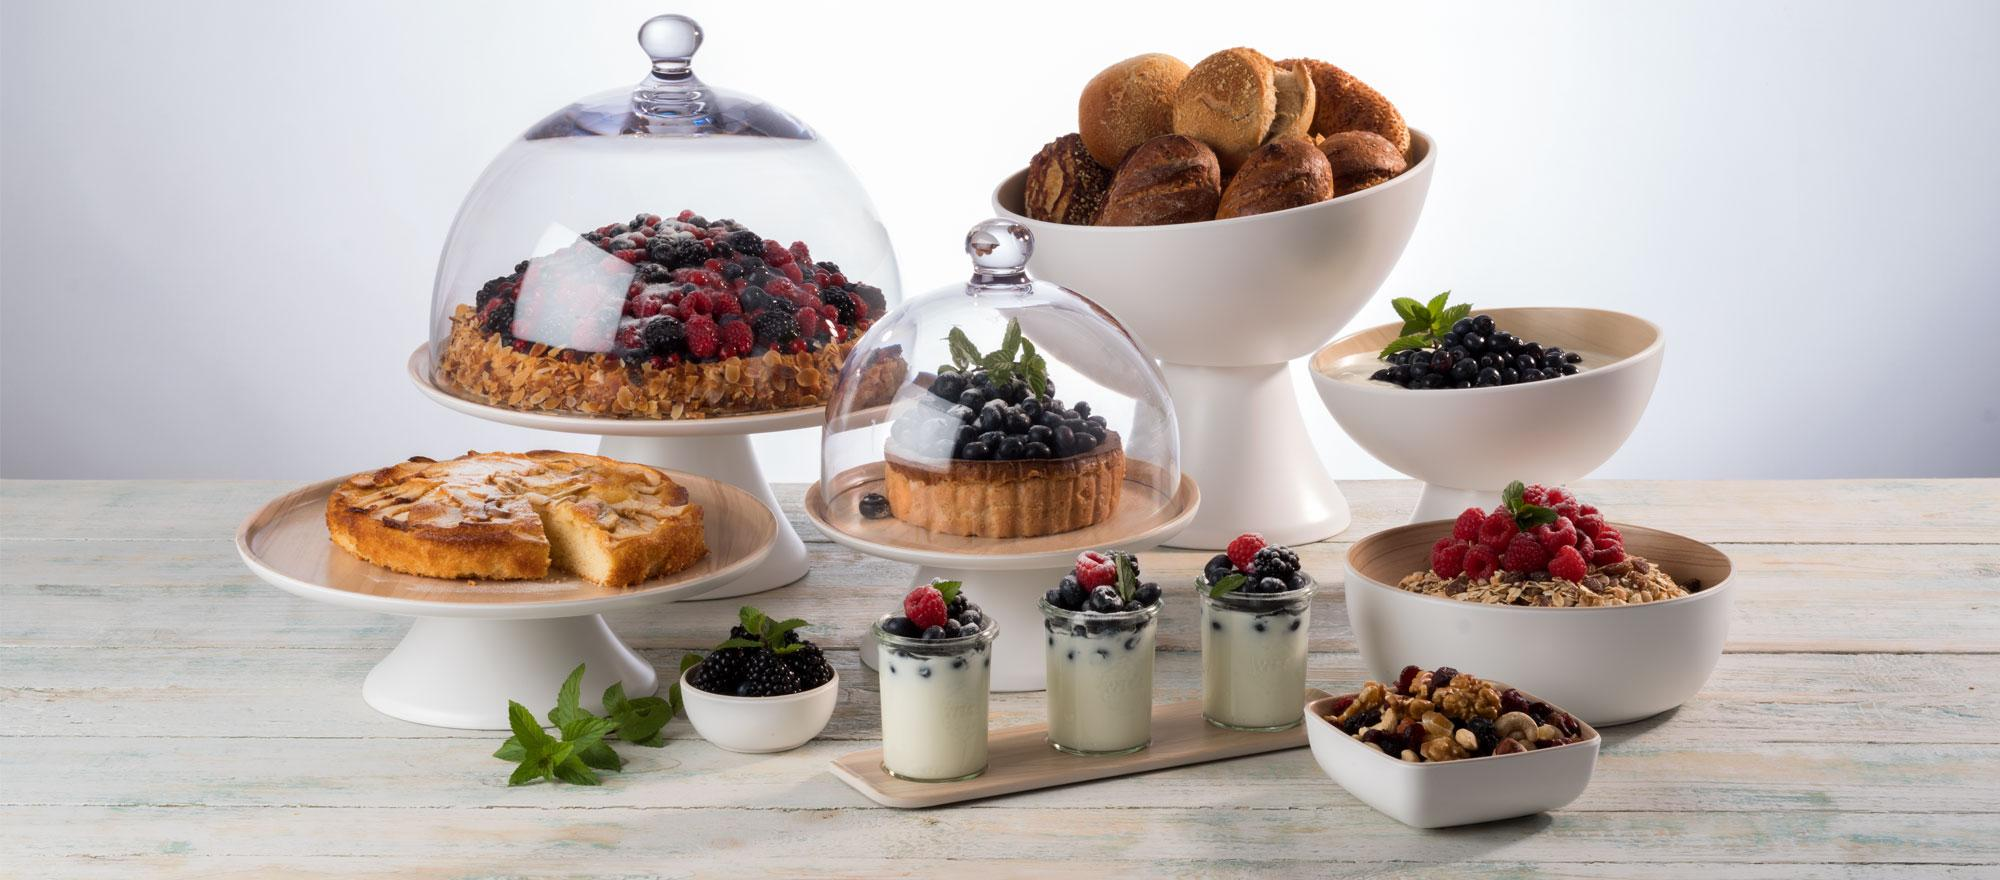 Buffet & Tabletop Melamine